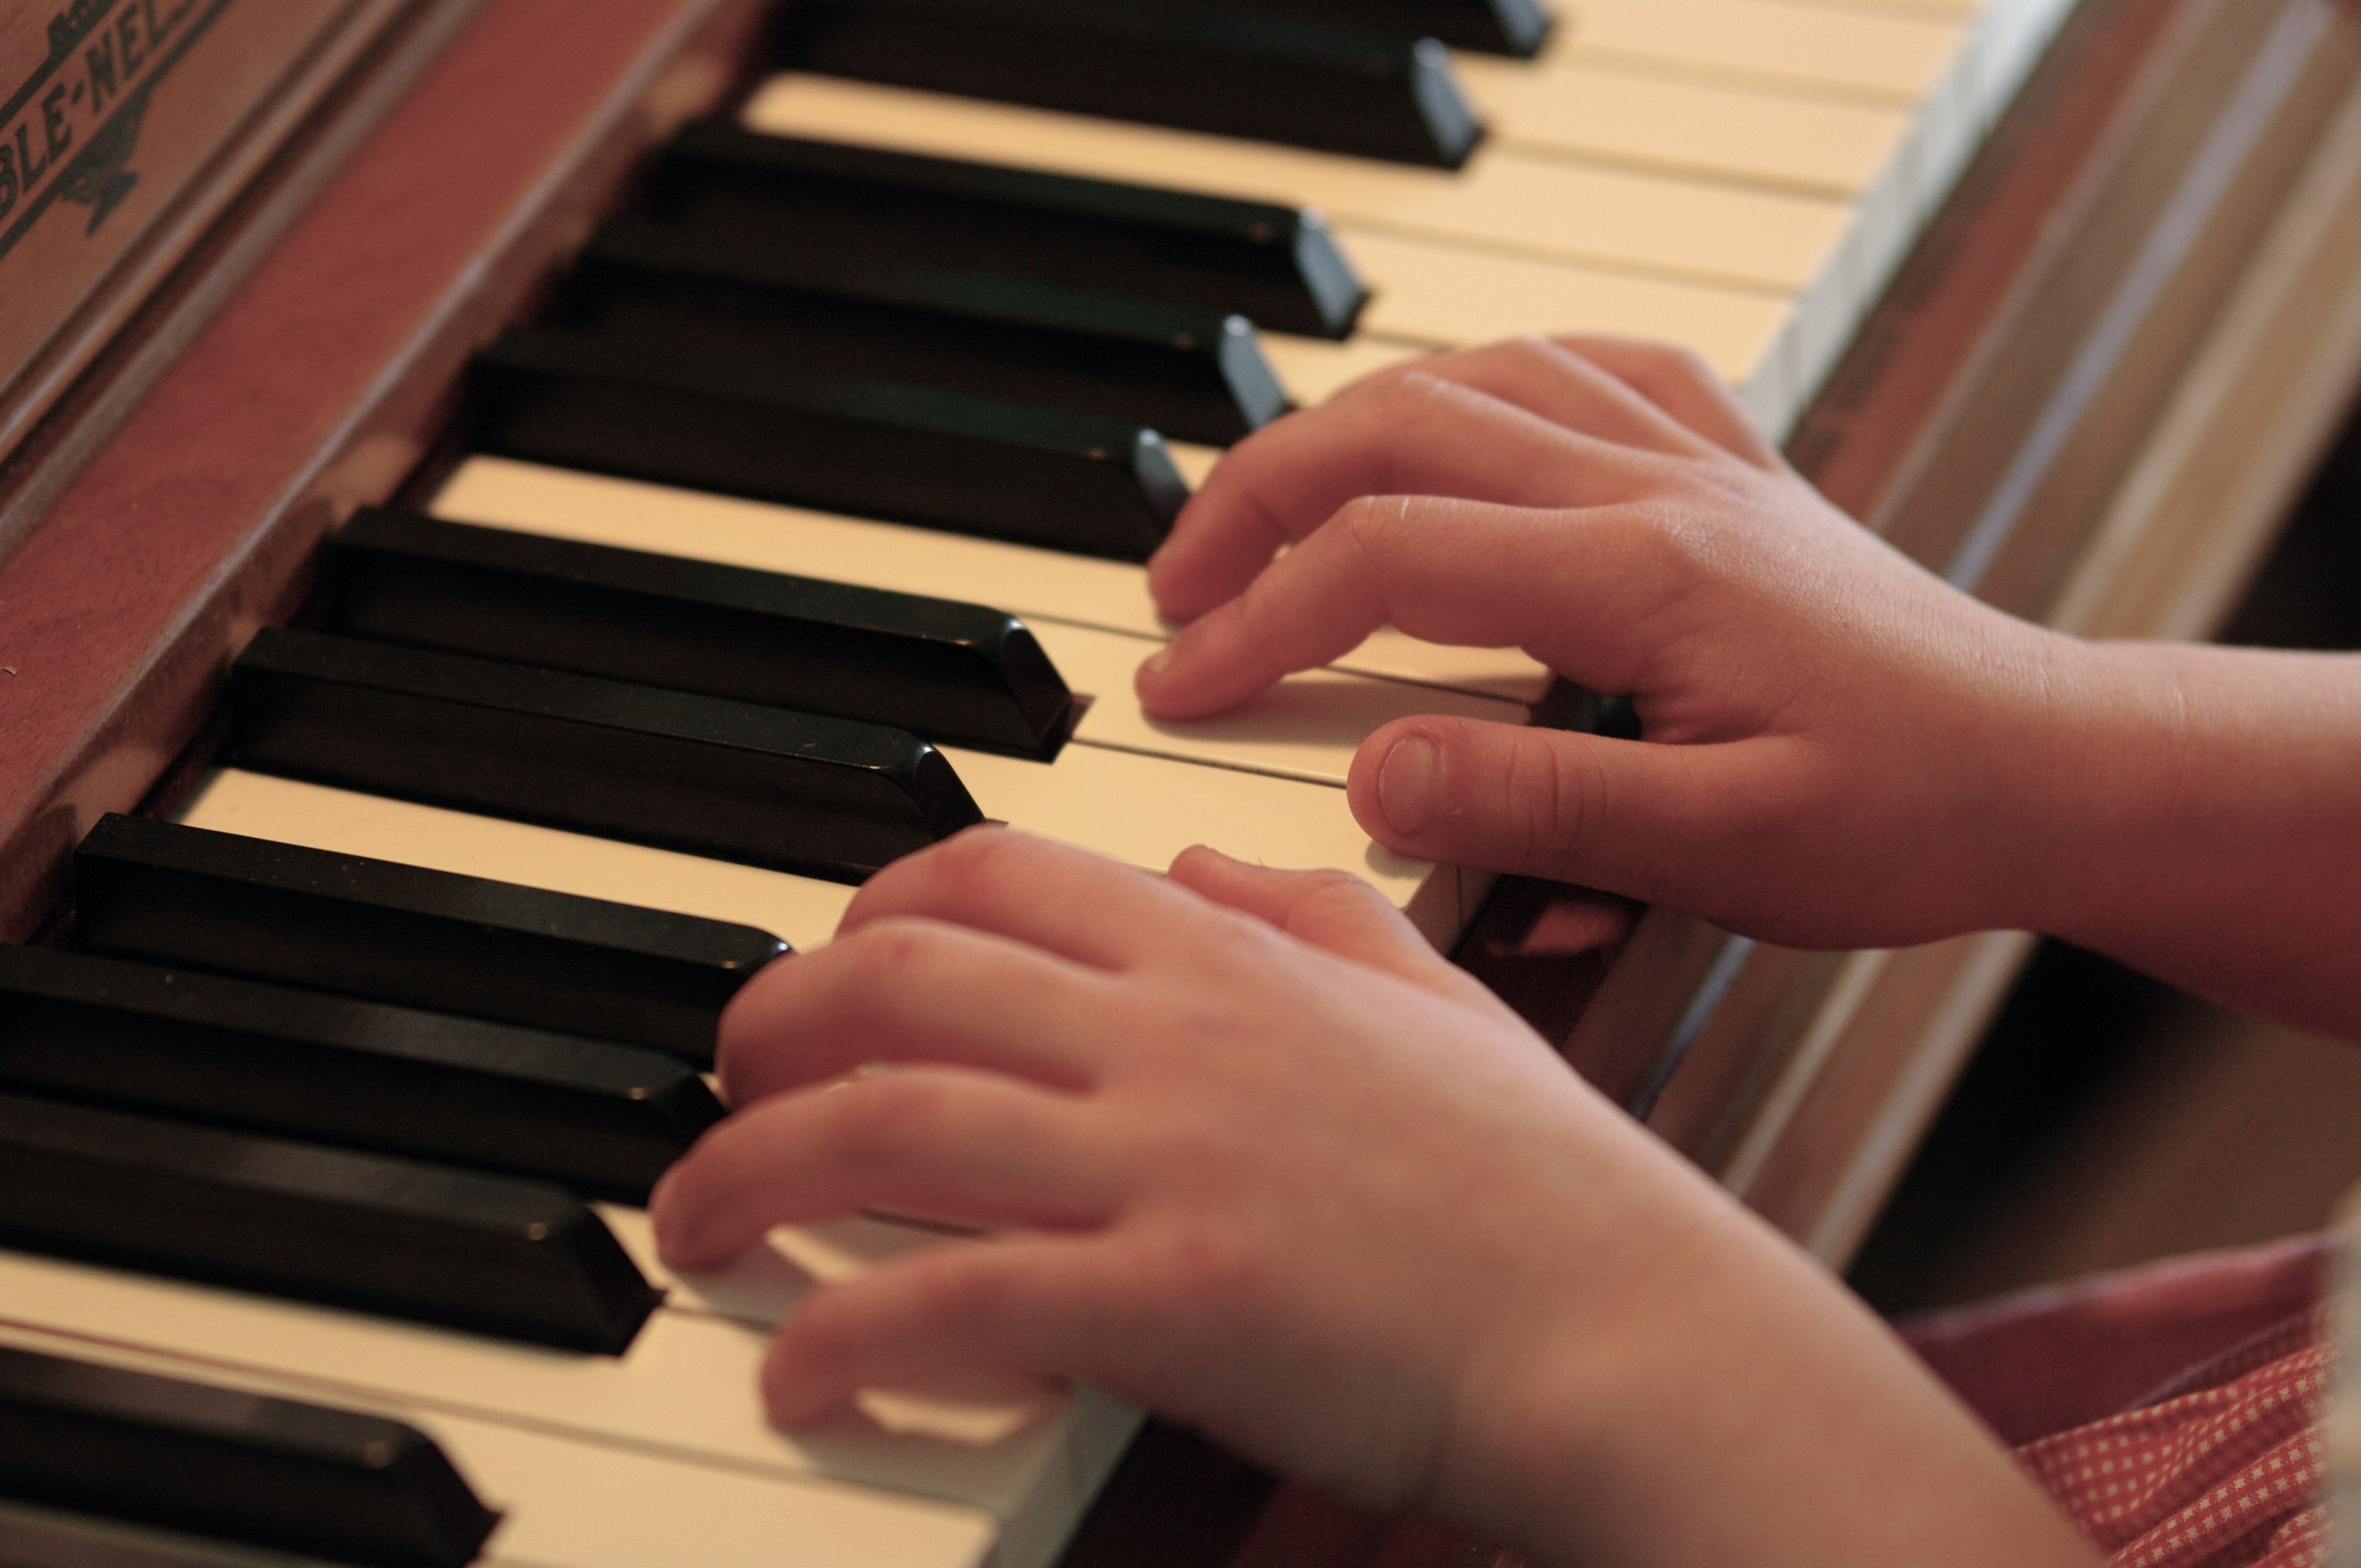 a review of the play the piano lesson ⭐️⭐️⭐️⭐️(2820/reviews) the piano lesson play review - classical piano lessons #the piano lesson play review learn to play piano instantly - learn now | offers fully.